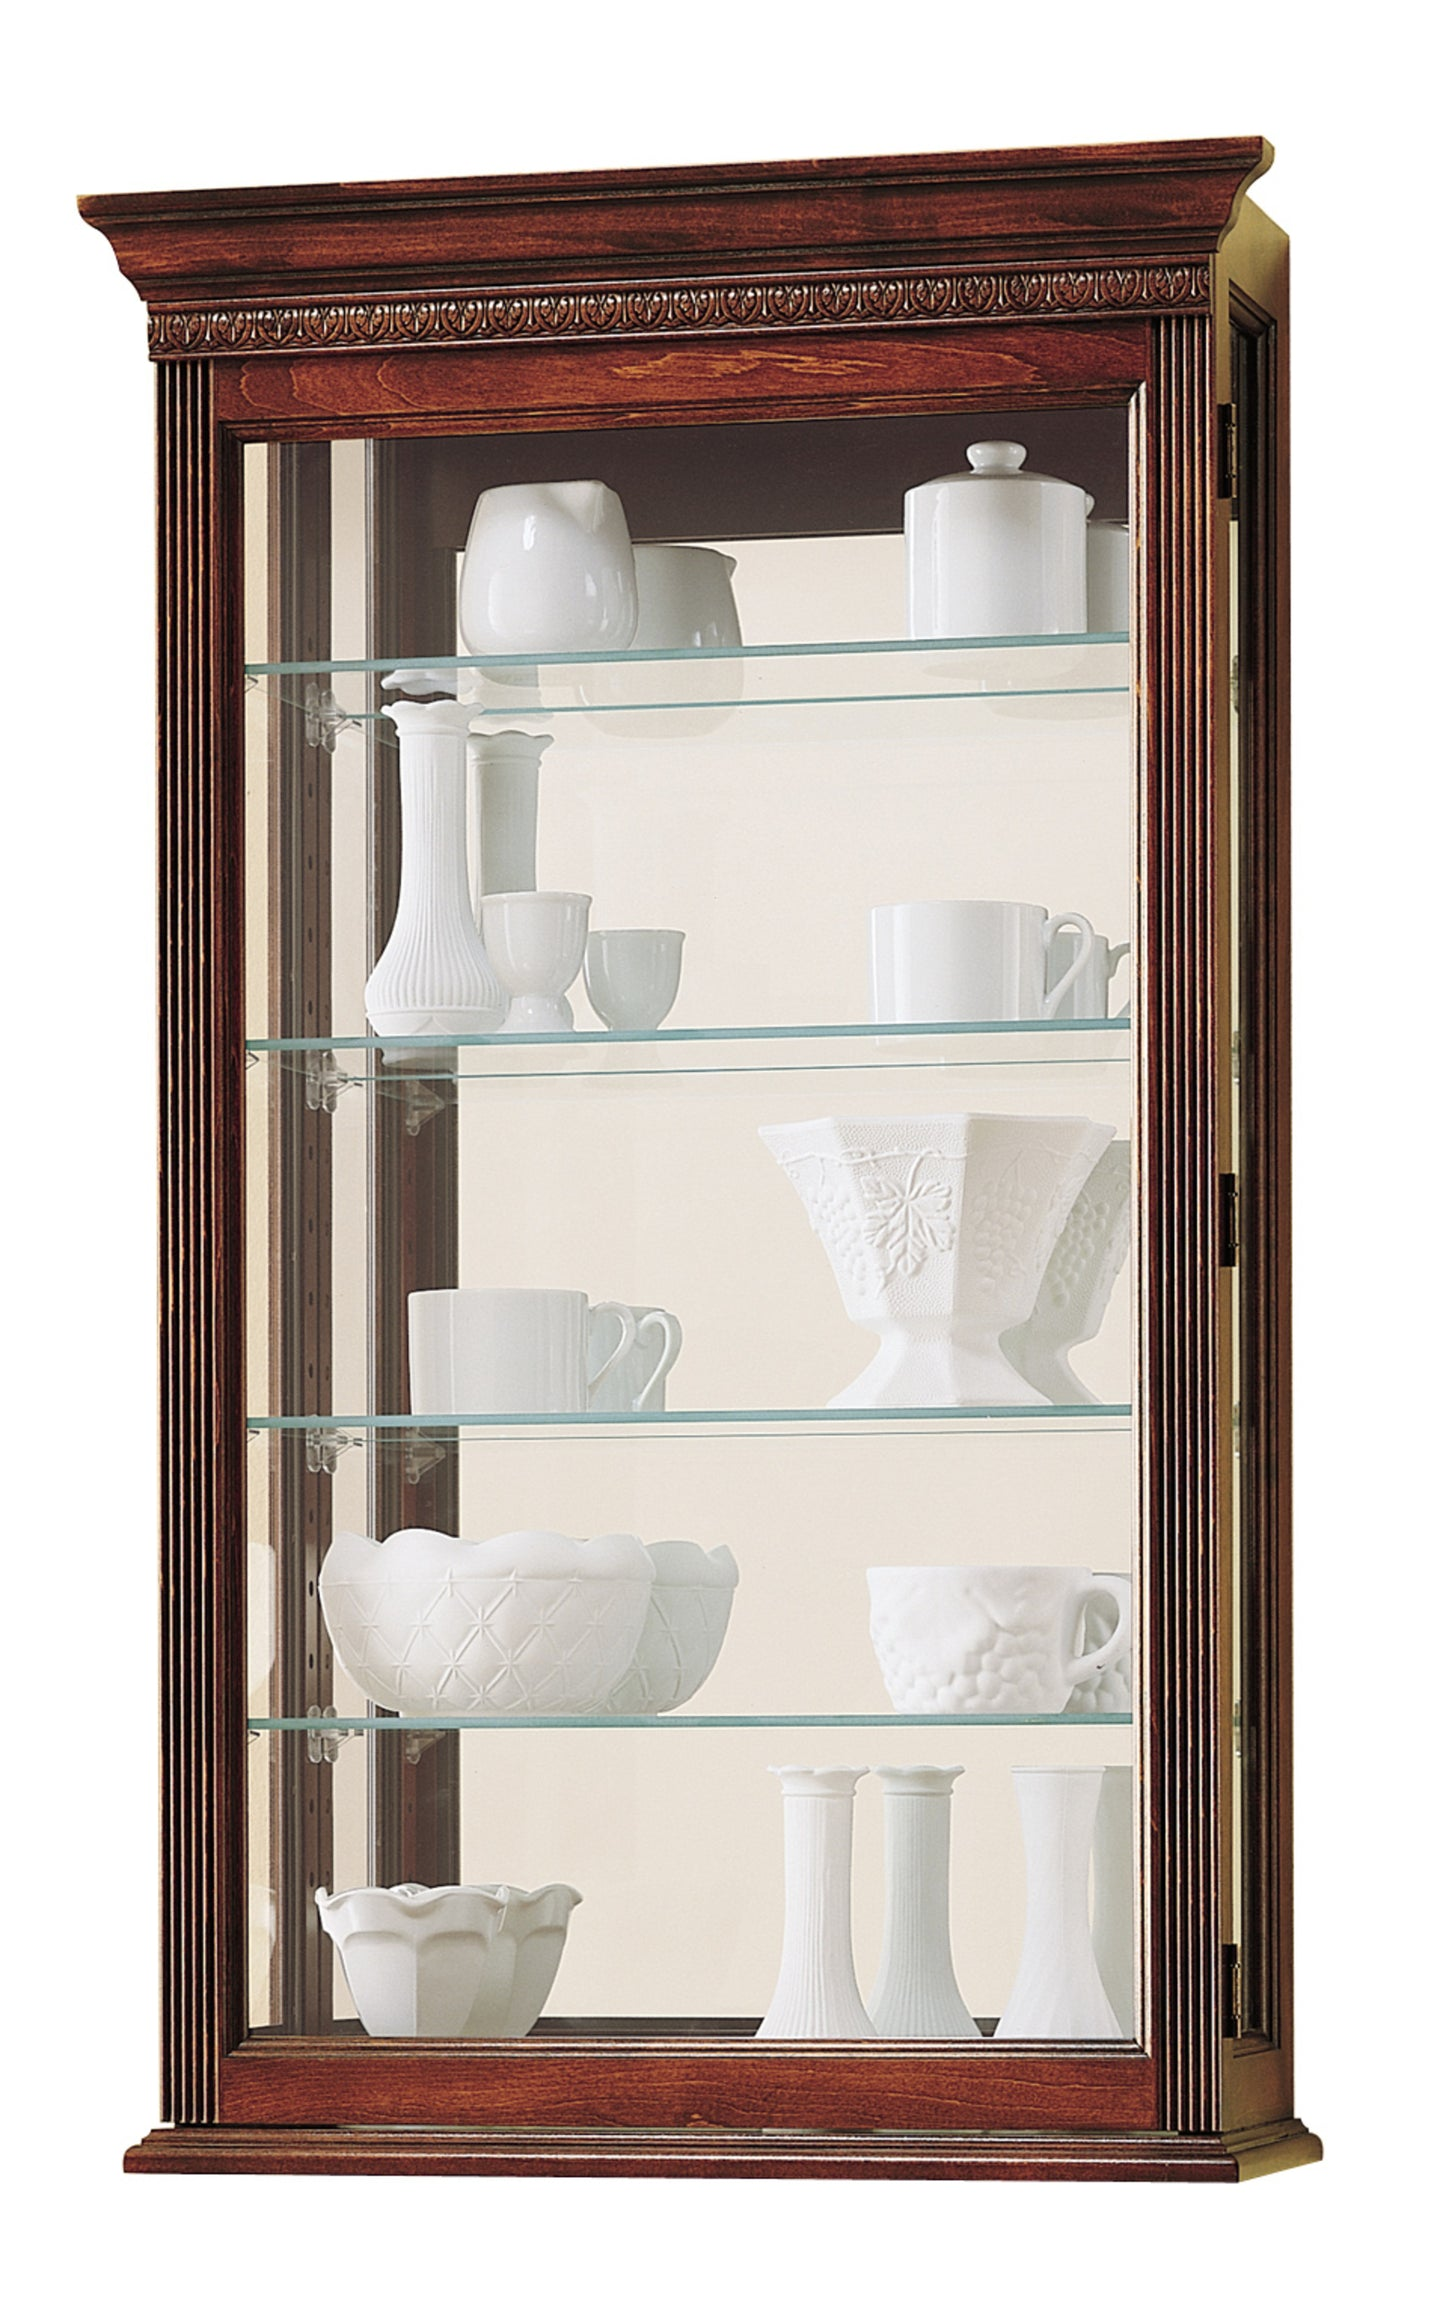 Howard Miller Edmonton Curio Cabinet 685104 - Curios And More